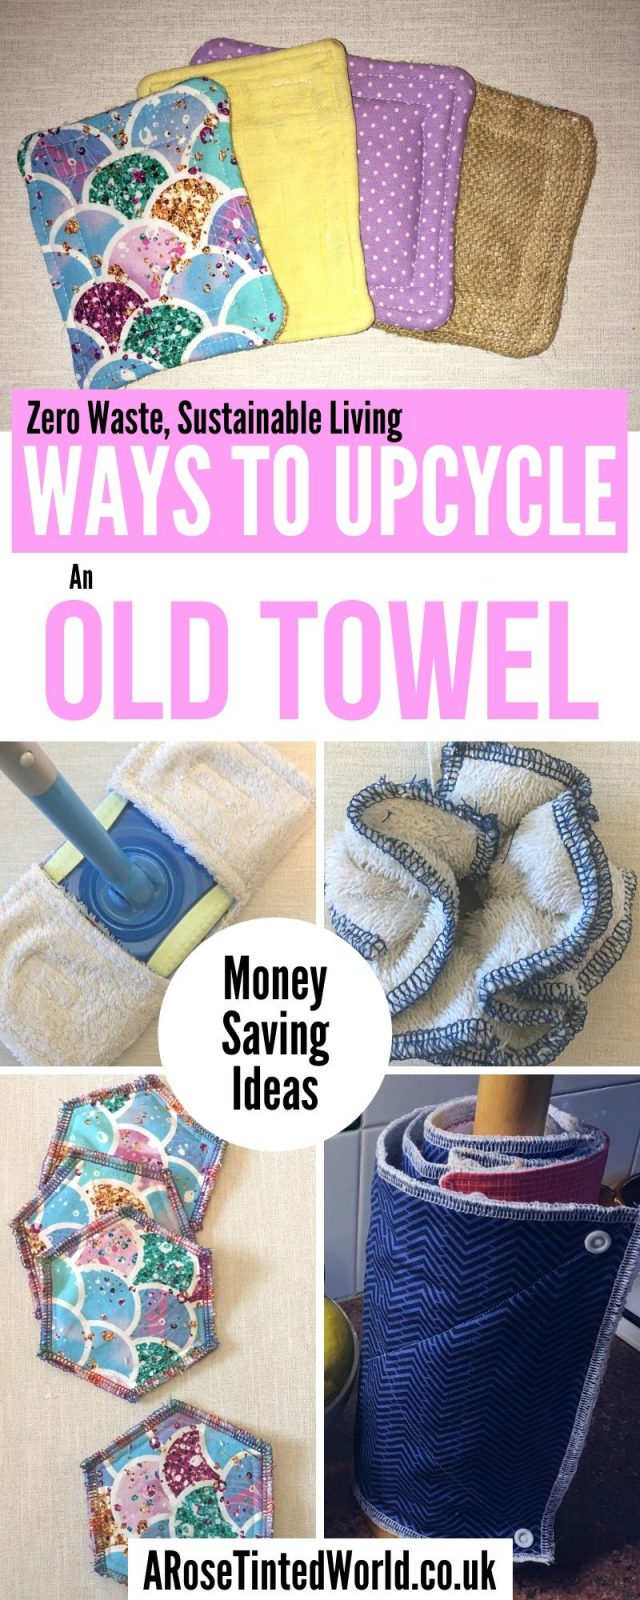 Ways To Upcycle Old Towels - looking for zero waste, sustainable ideas of how to reuse your old towel? Find here some great ways of recycling this versatile fabric and making some brilliantly useful items. #sewing #zerowaste #sustainable #upcycle #recycle #zerowasteliving #zerowastesewing #upcycledtowels